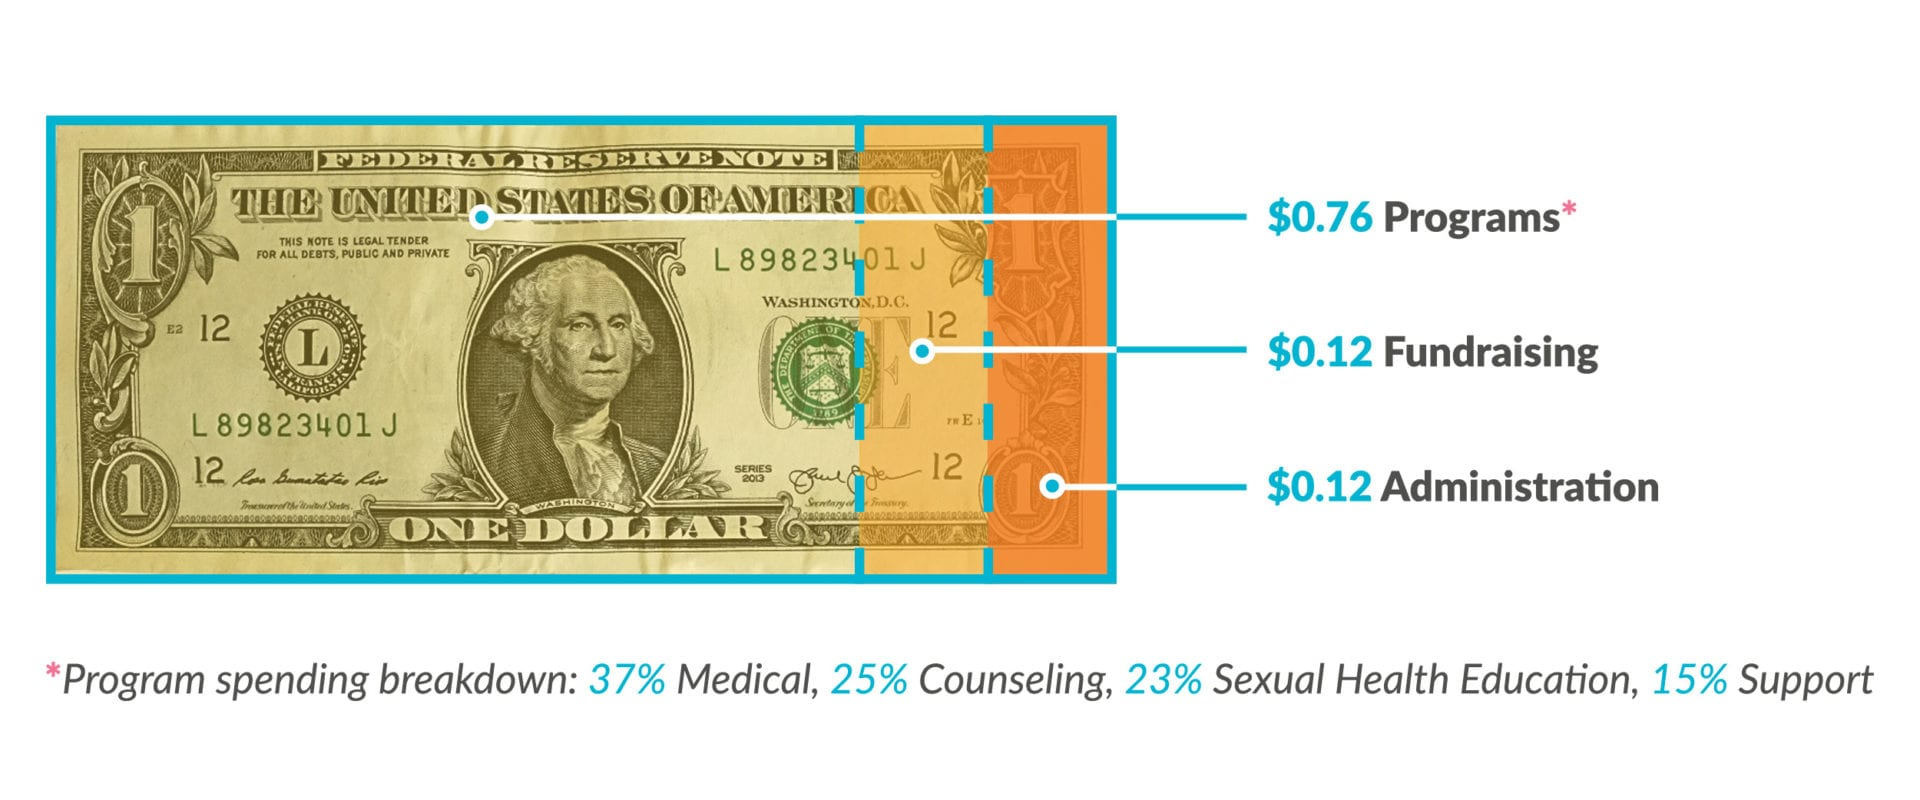 Breakdown of spending using a dollar bill